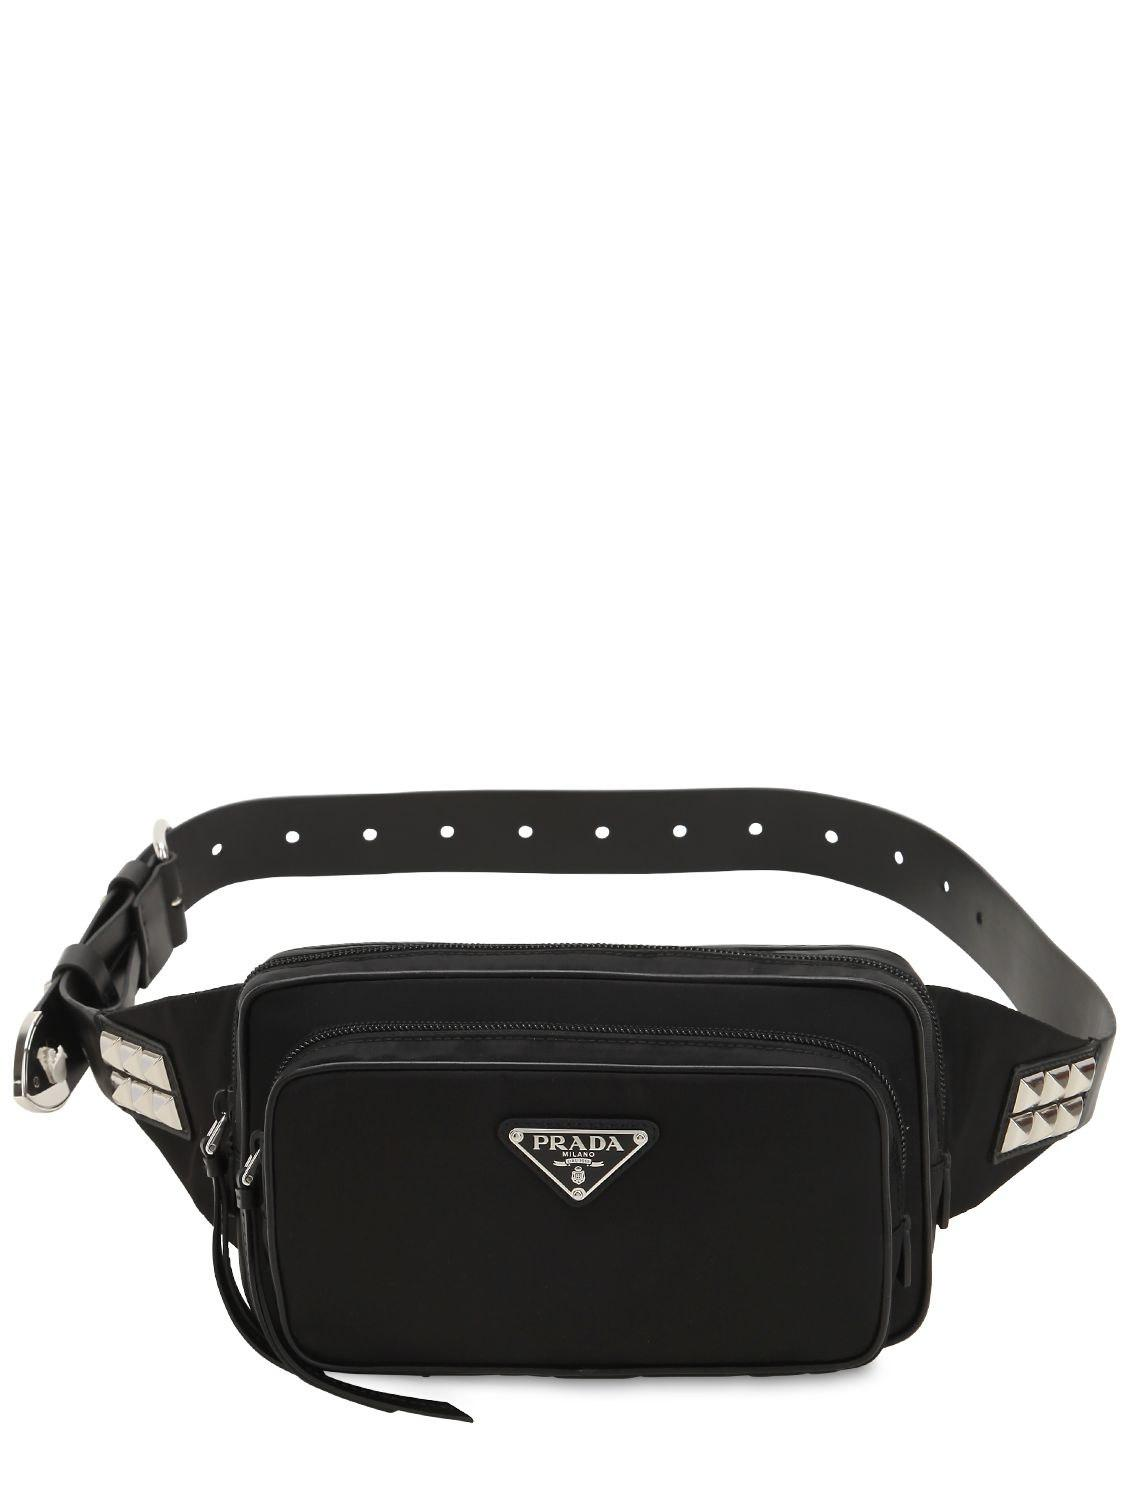 d4704bd2aef5 Prada - Black New Vela Nylon Belt Bag W  Studs - Lyst. View fullscreen